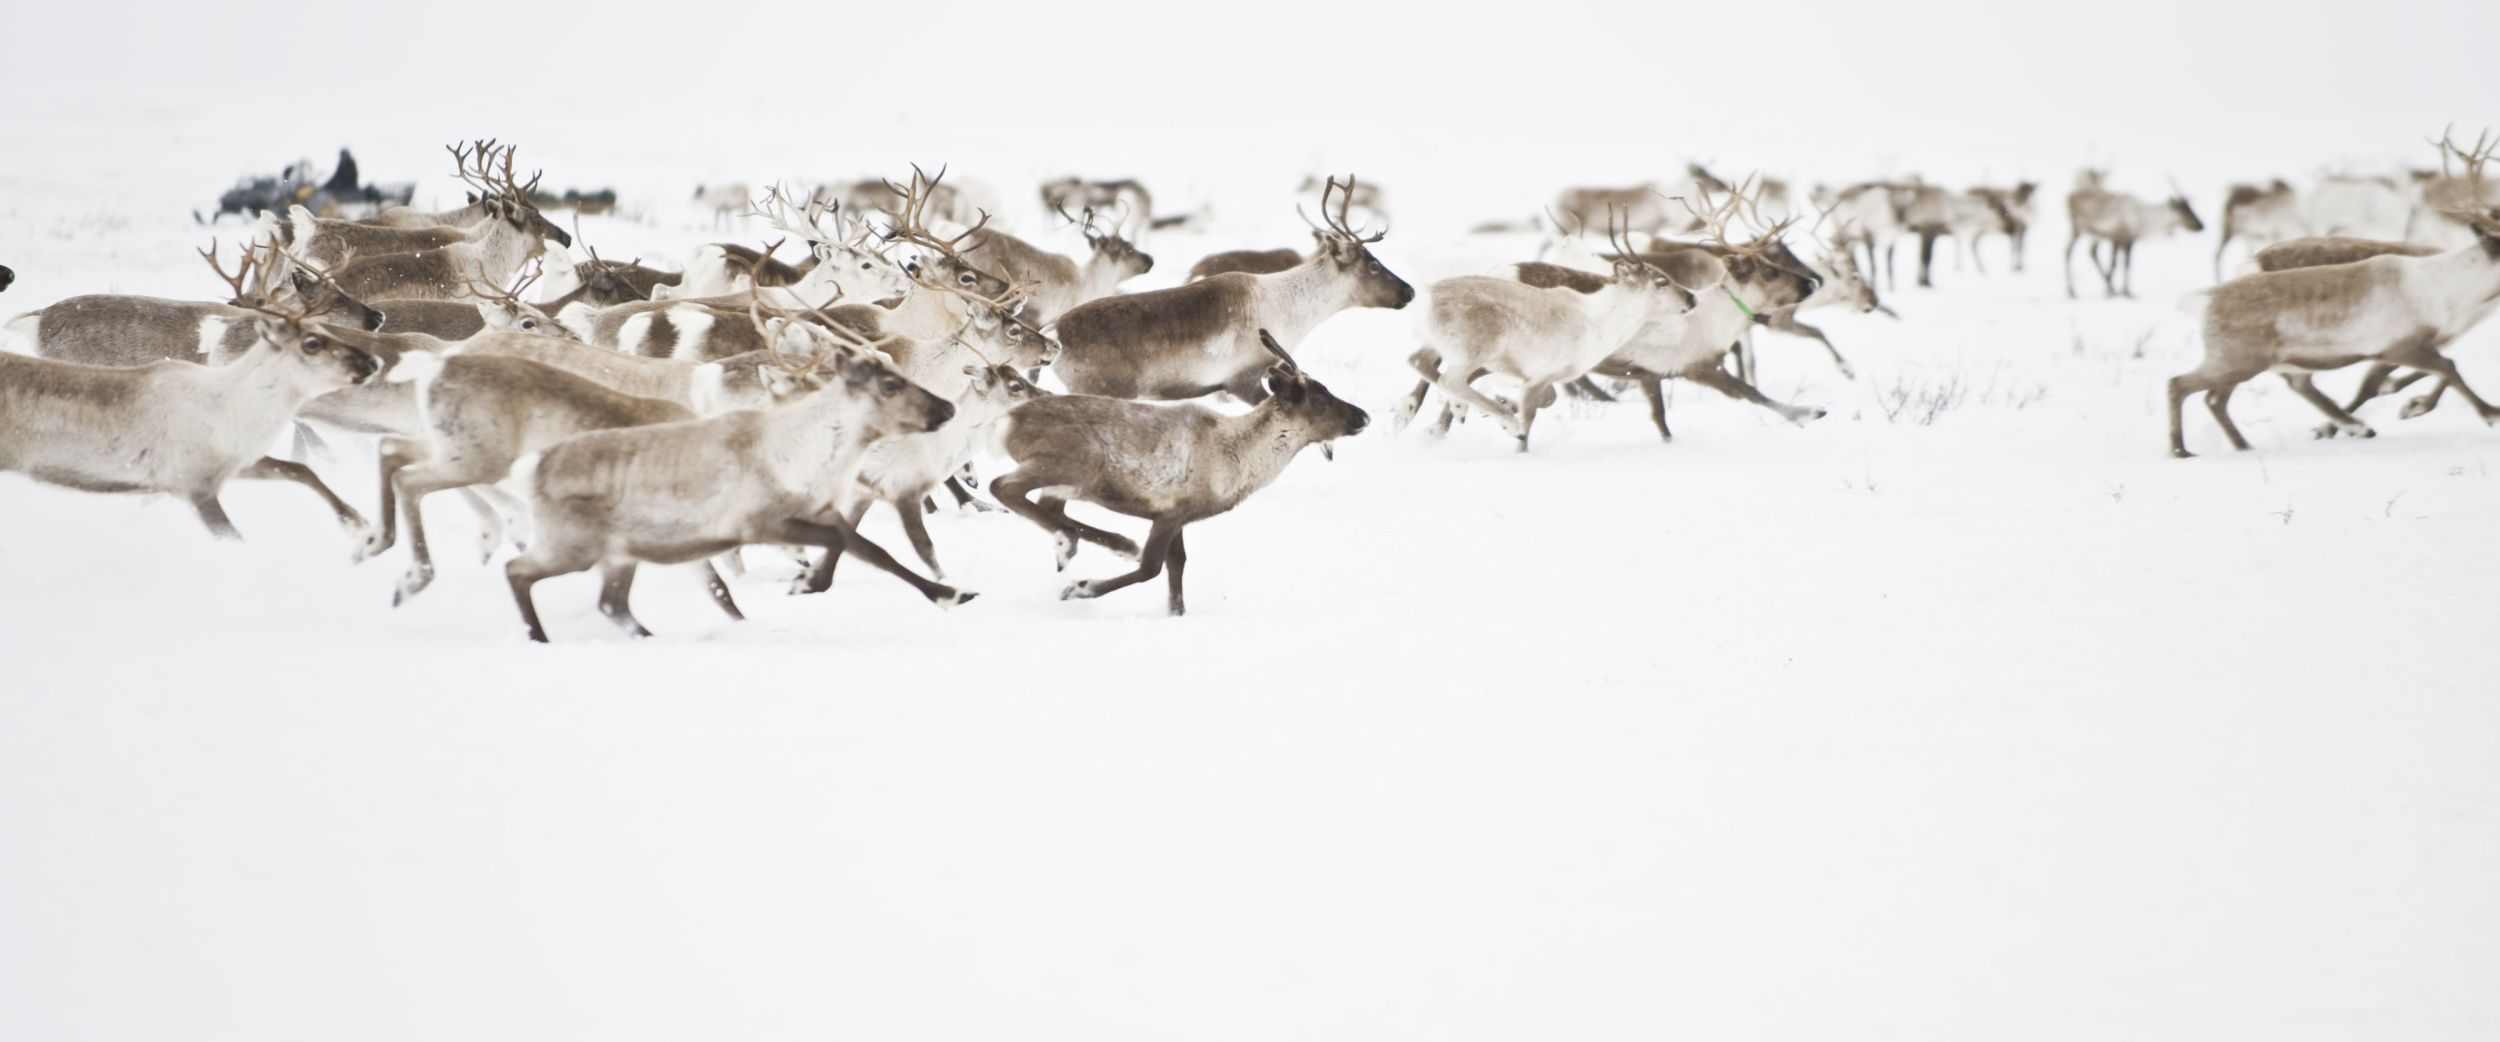 Reindeers at the Finnmark mountain plateau. Photo Terje rakke/visitnorway.com